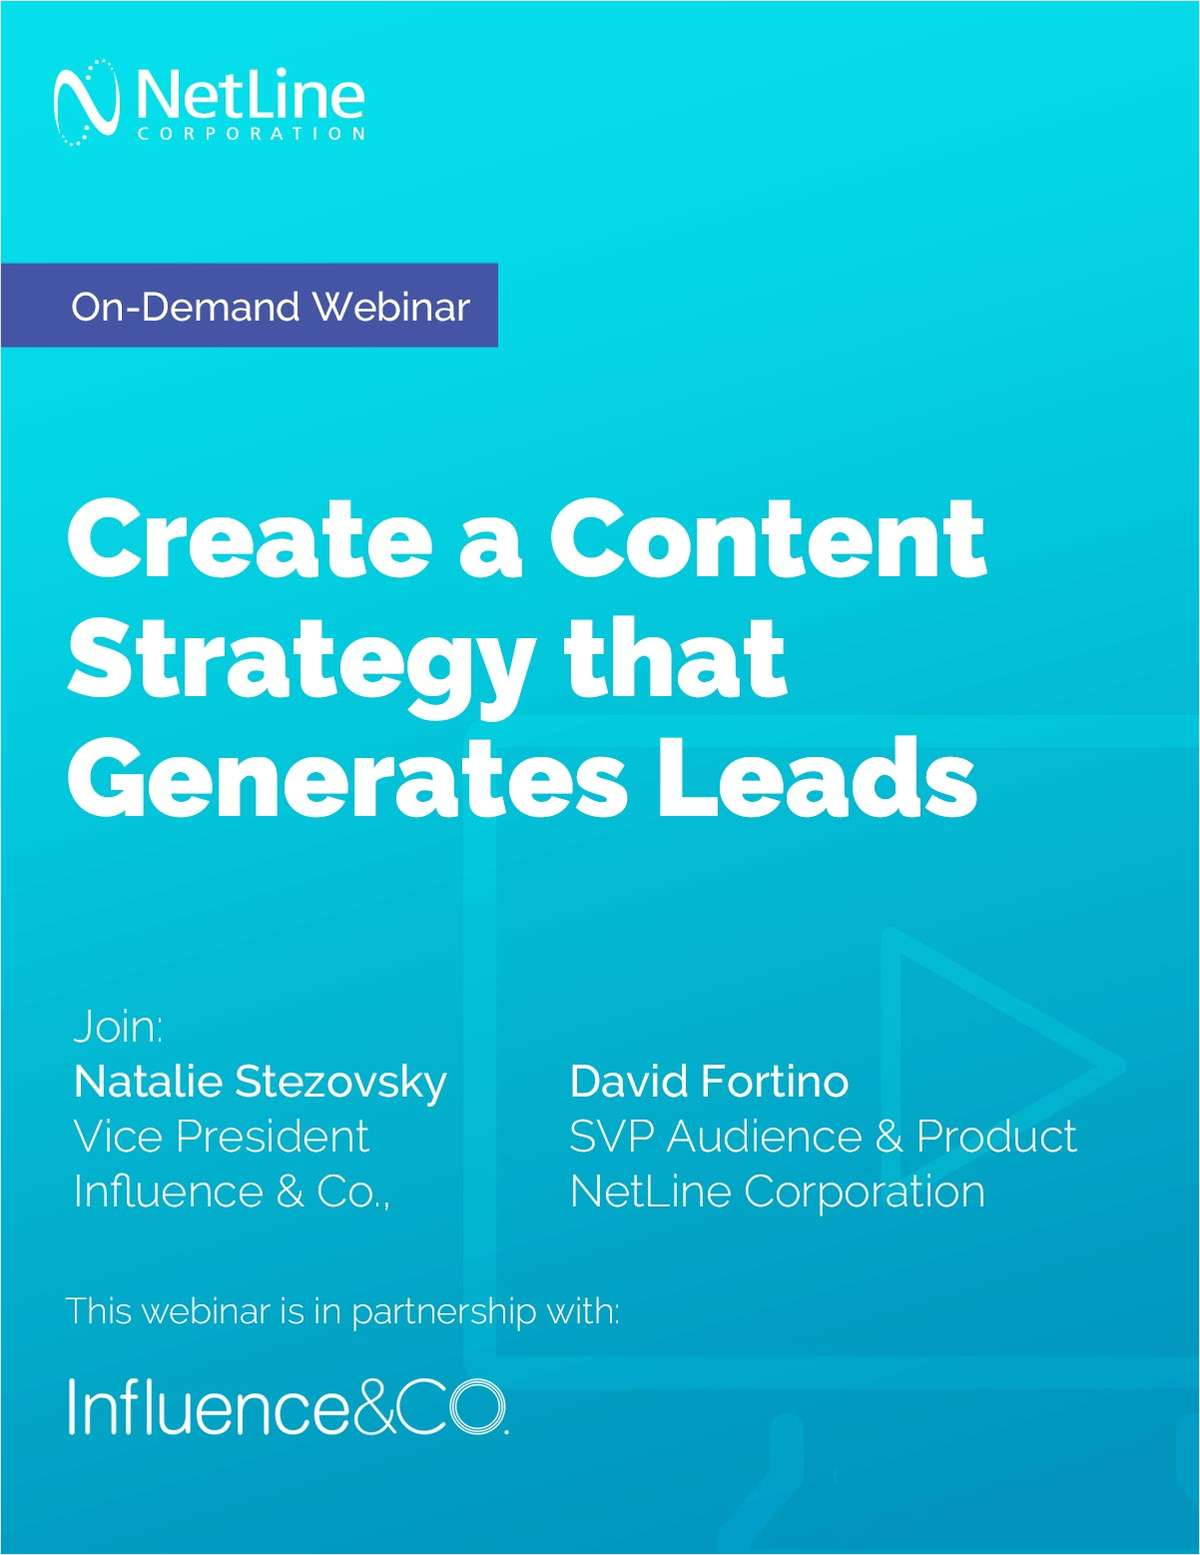 Create a Content Strategy that Generates Leads